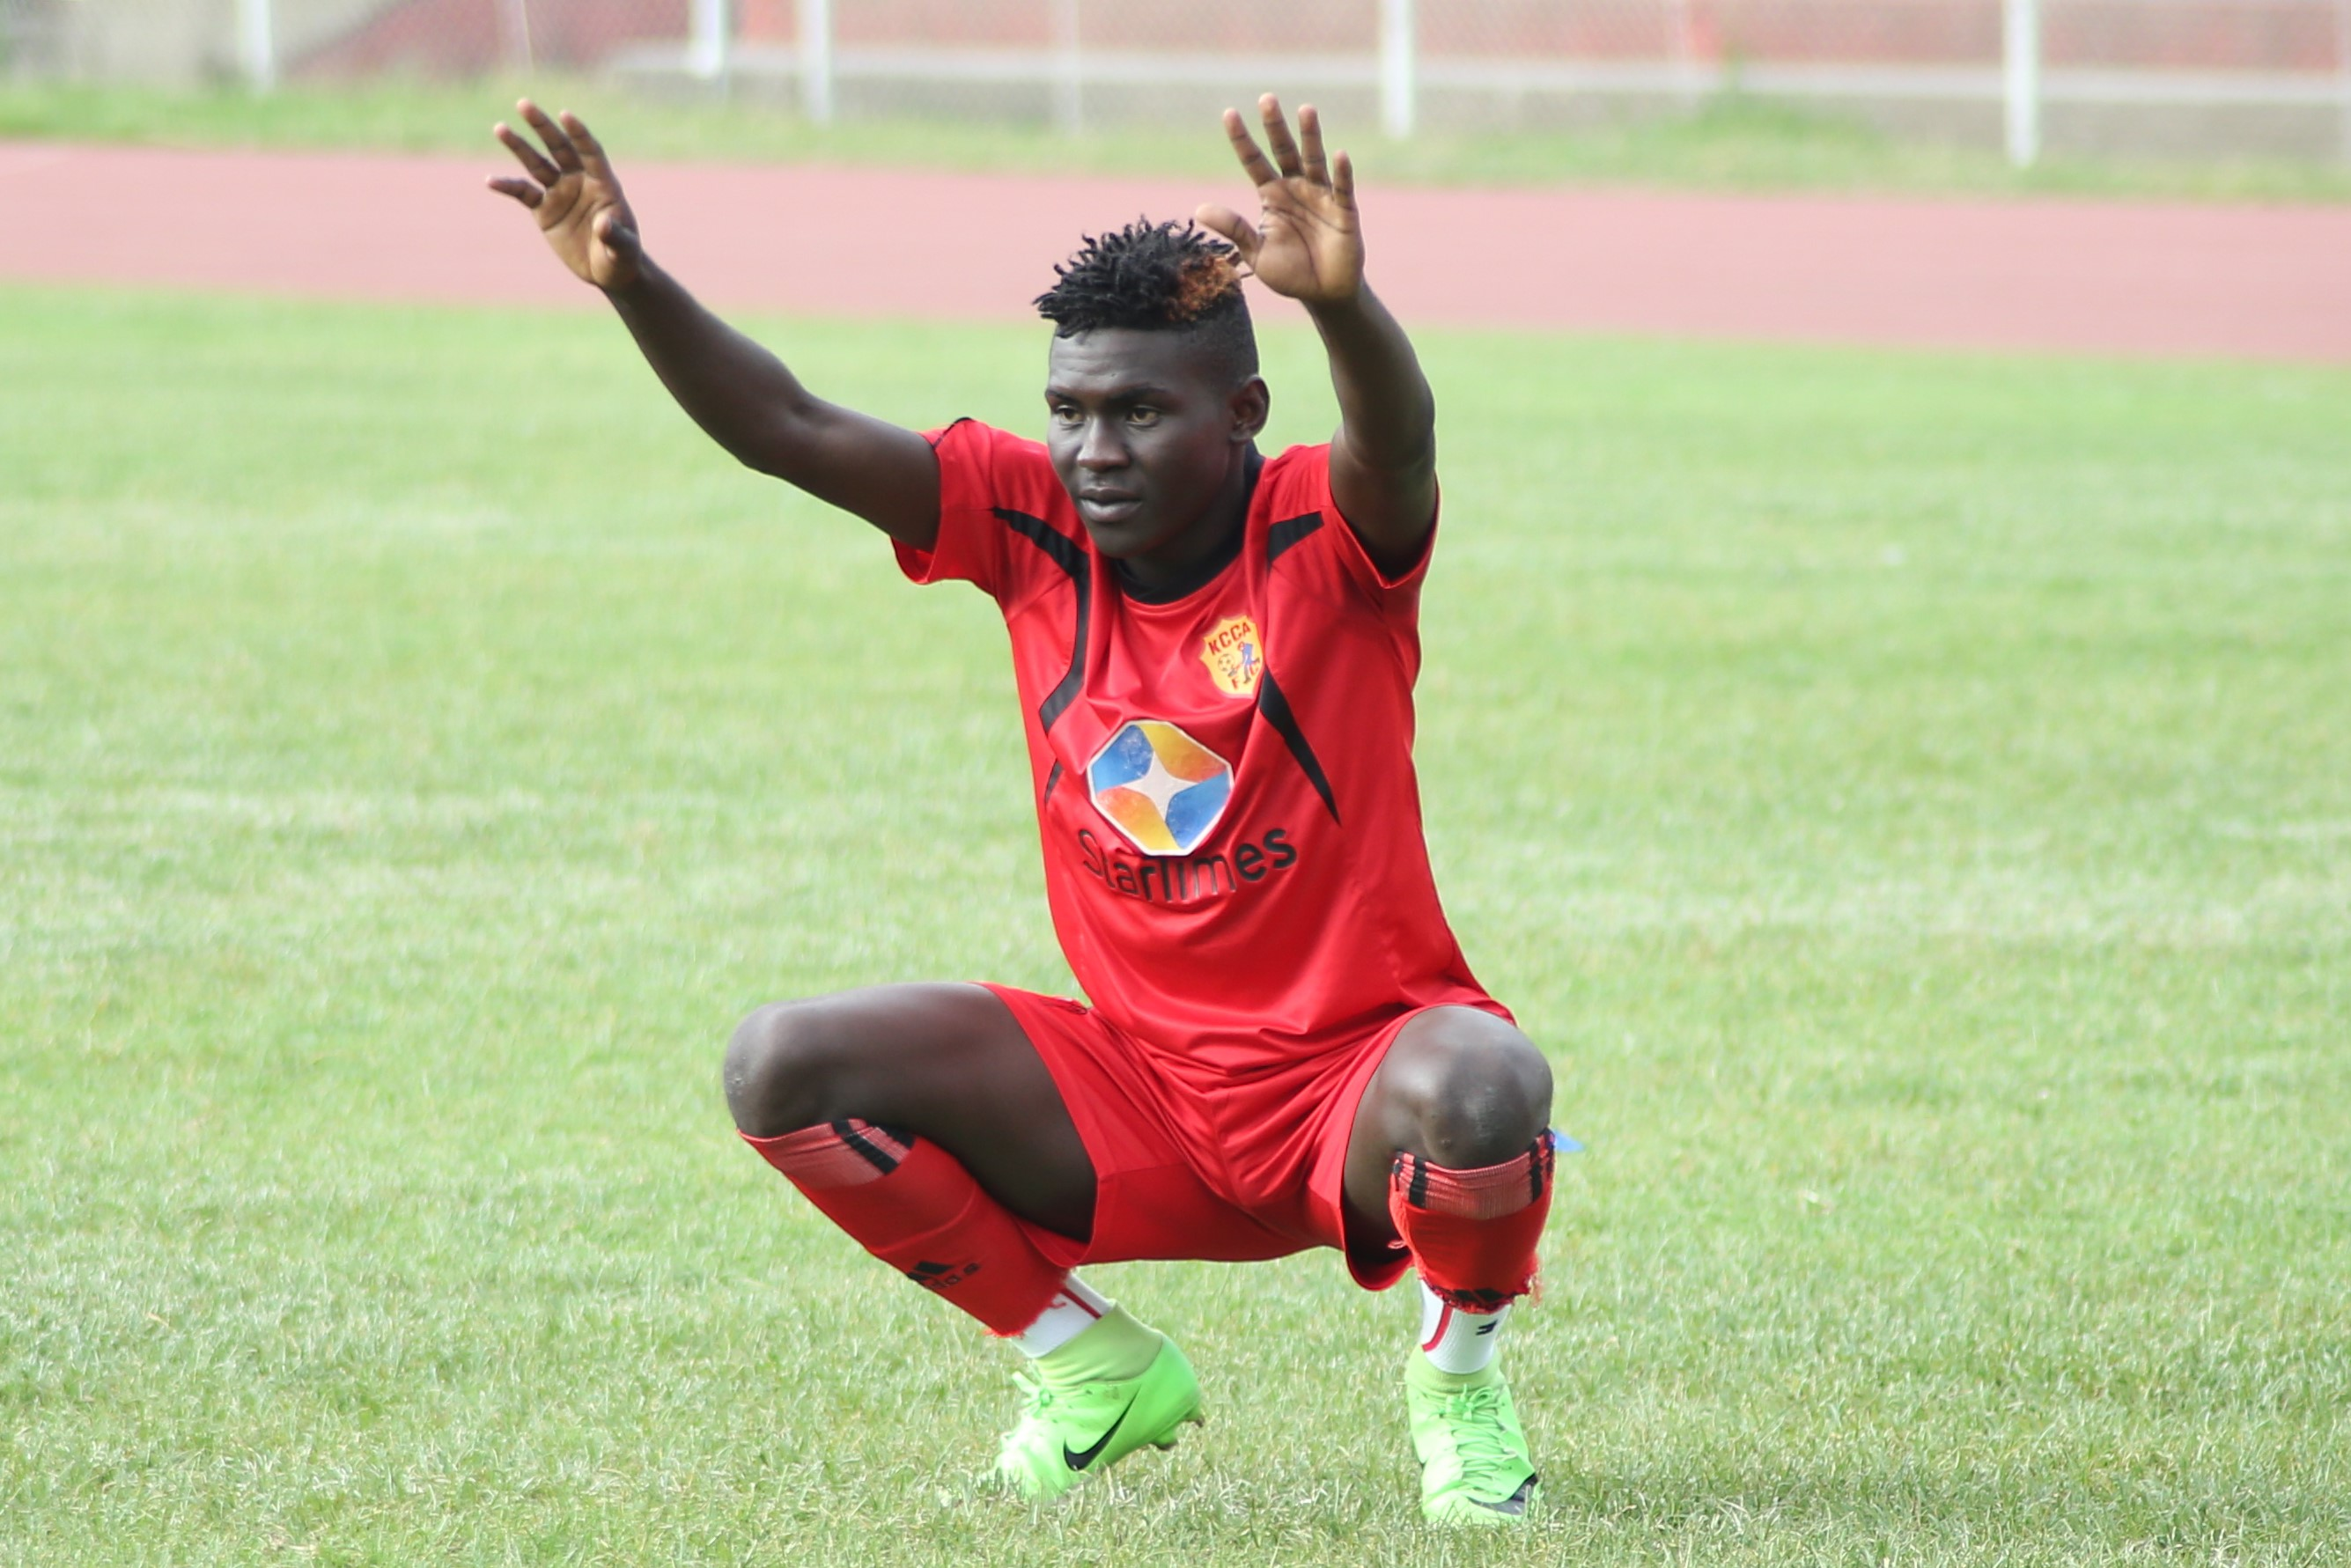 Shaban scored 13 goals for KCCA FC in his last season in Uganda.